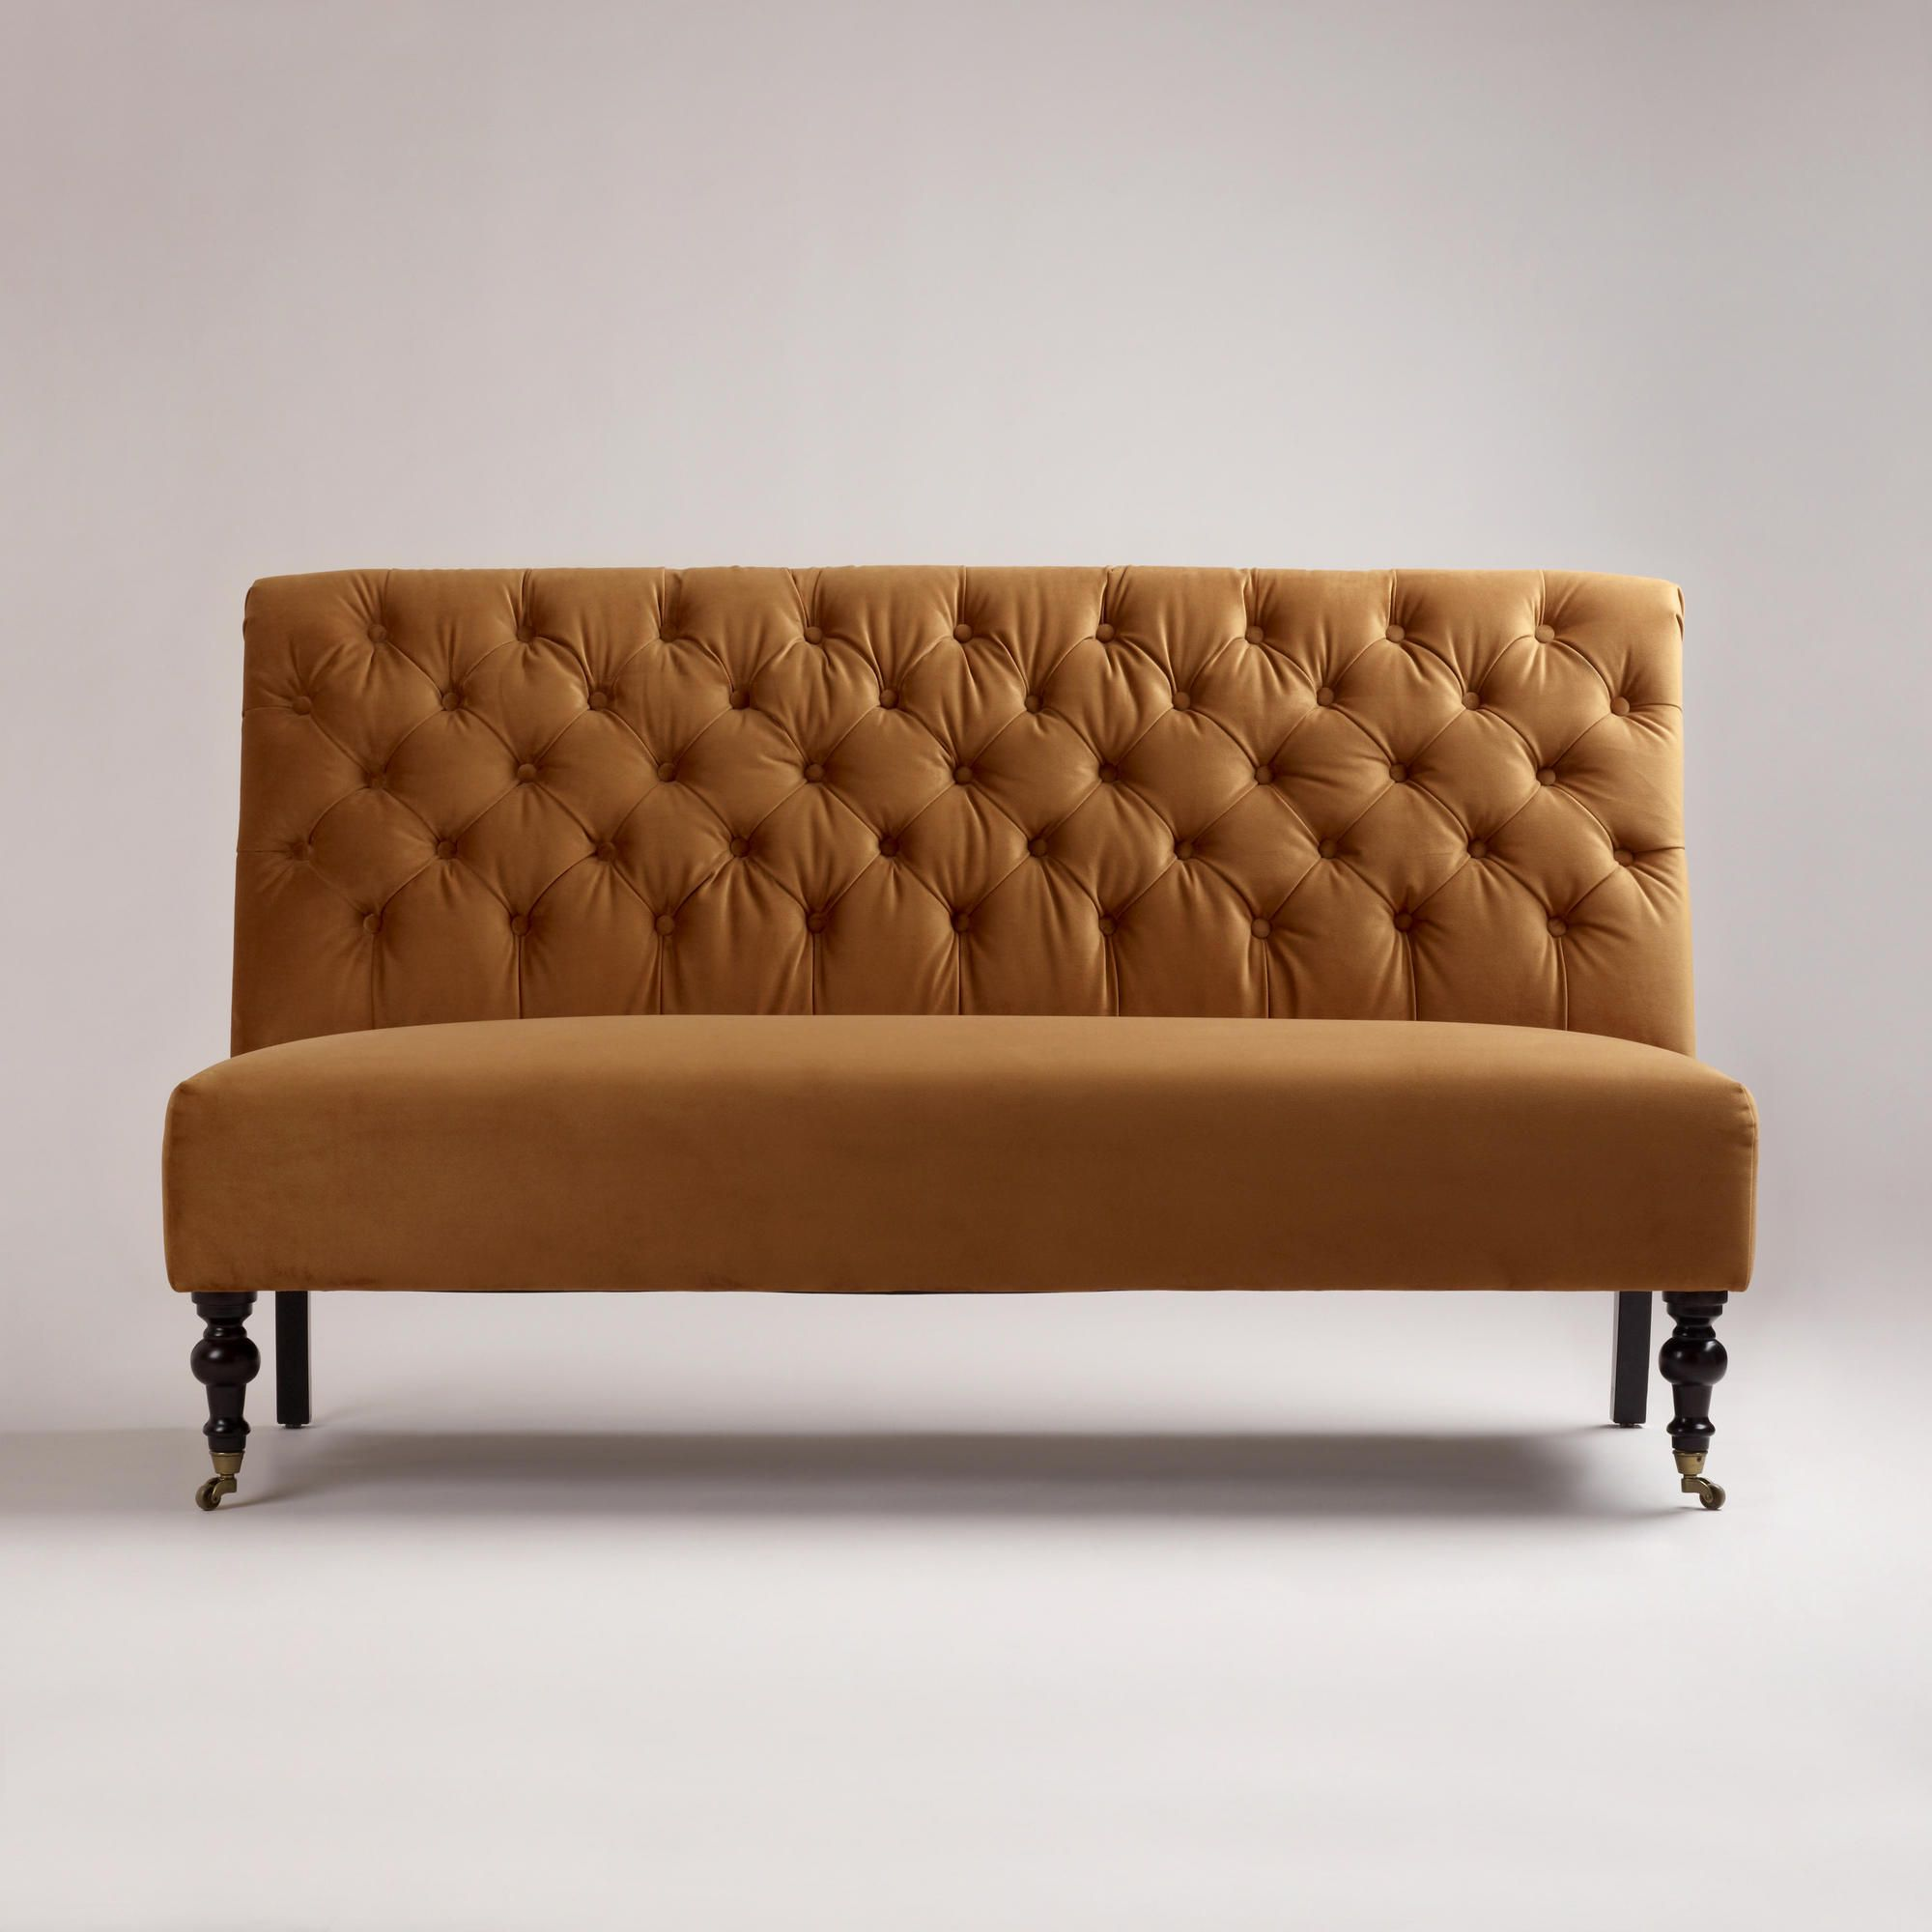 Superb Bench For The Dining Room Table Instead Of Chairs (Goldenrod Harper  Banquette | World Market